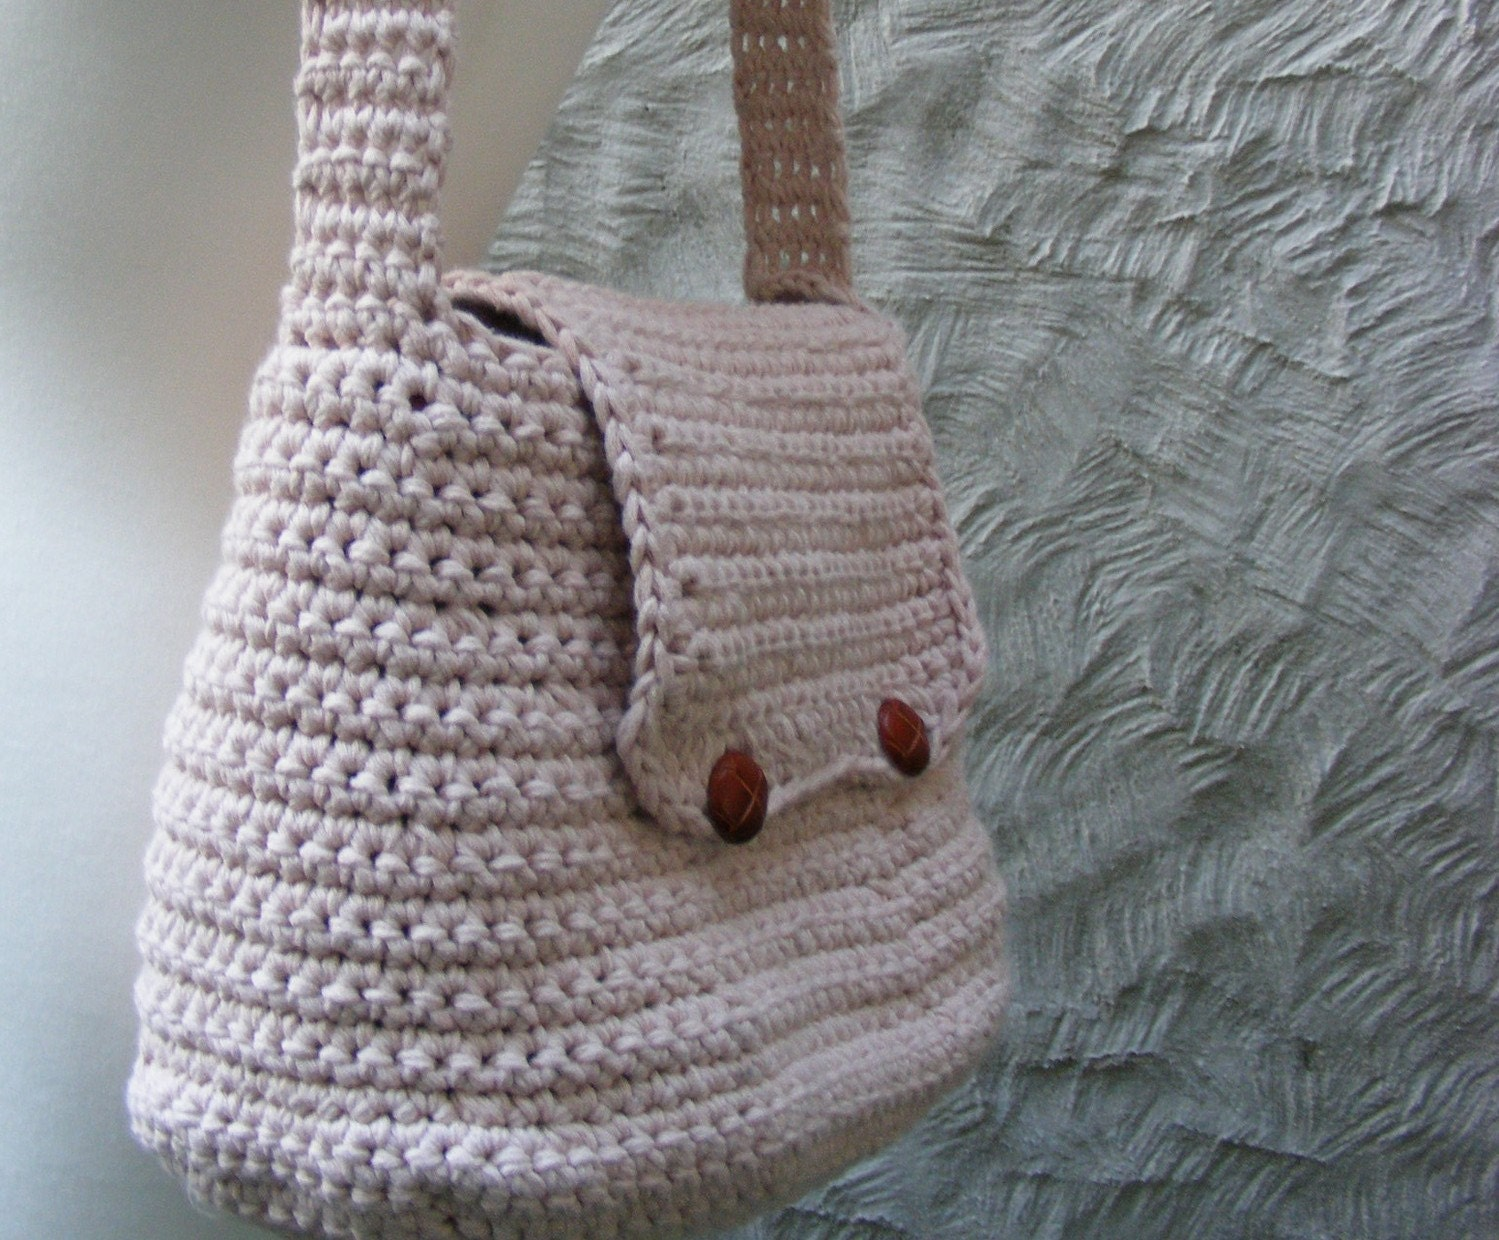 Crochet Bag Pattern : EASY CROCHET PURSE PATTERNS How To Crochet